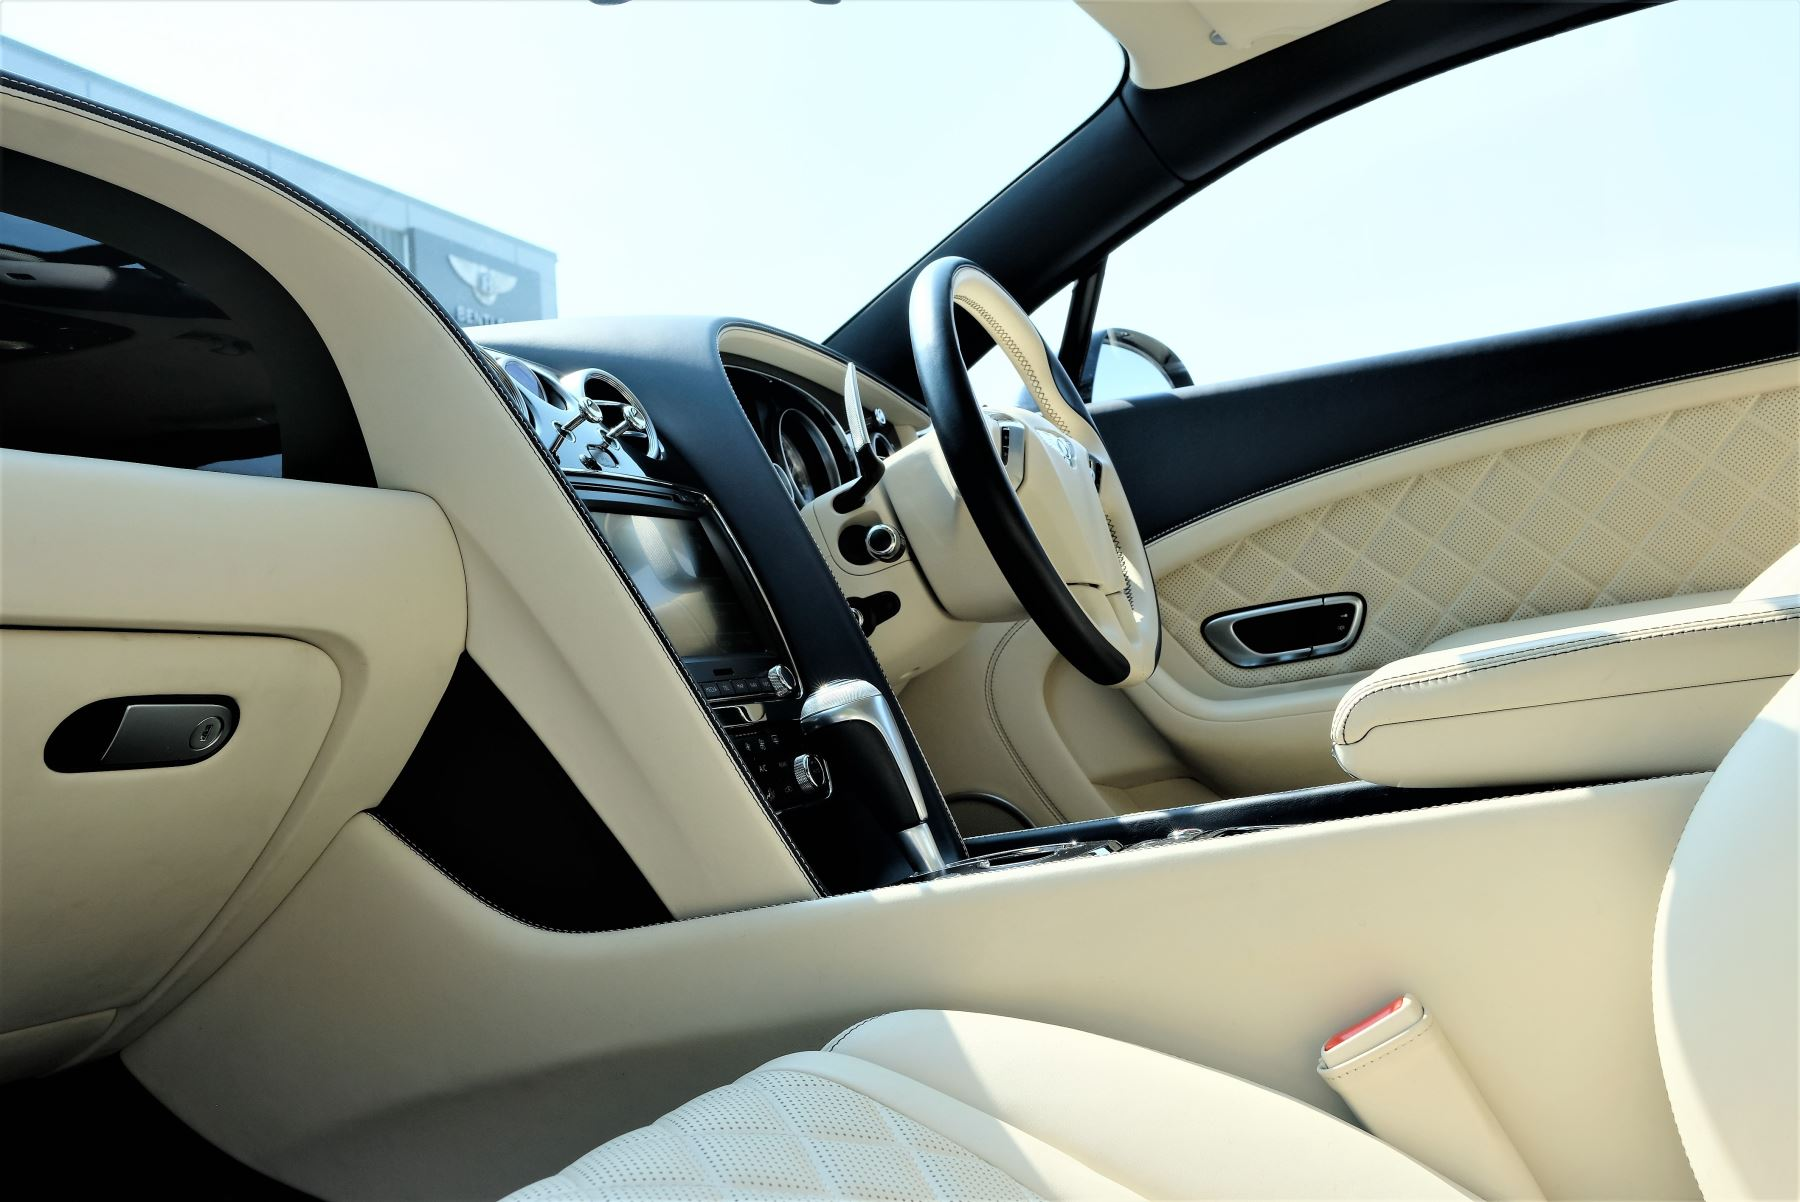 Bentley Continental GT V8 S Coupe 4.0 V8 S 2dr Auto Mulliner Driving Specification image 10